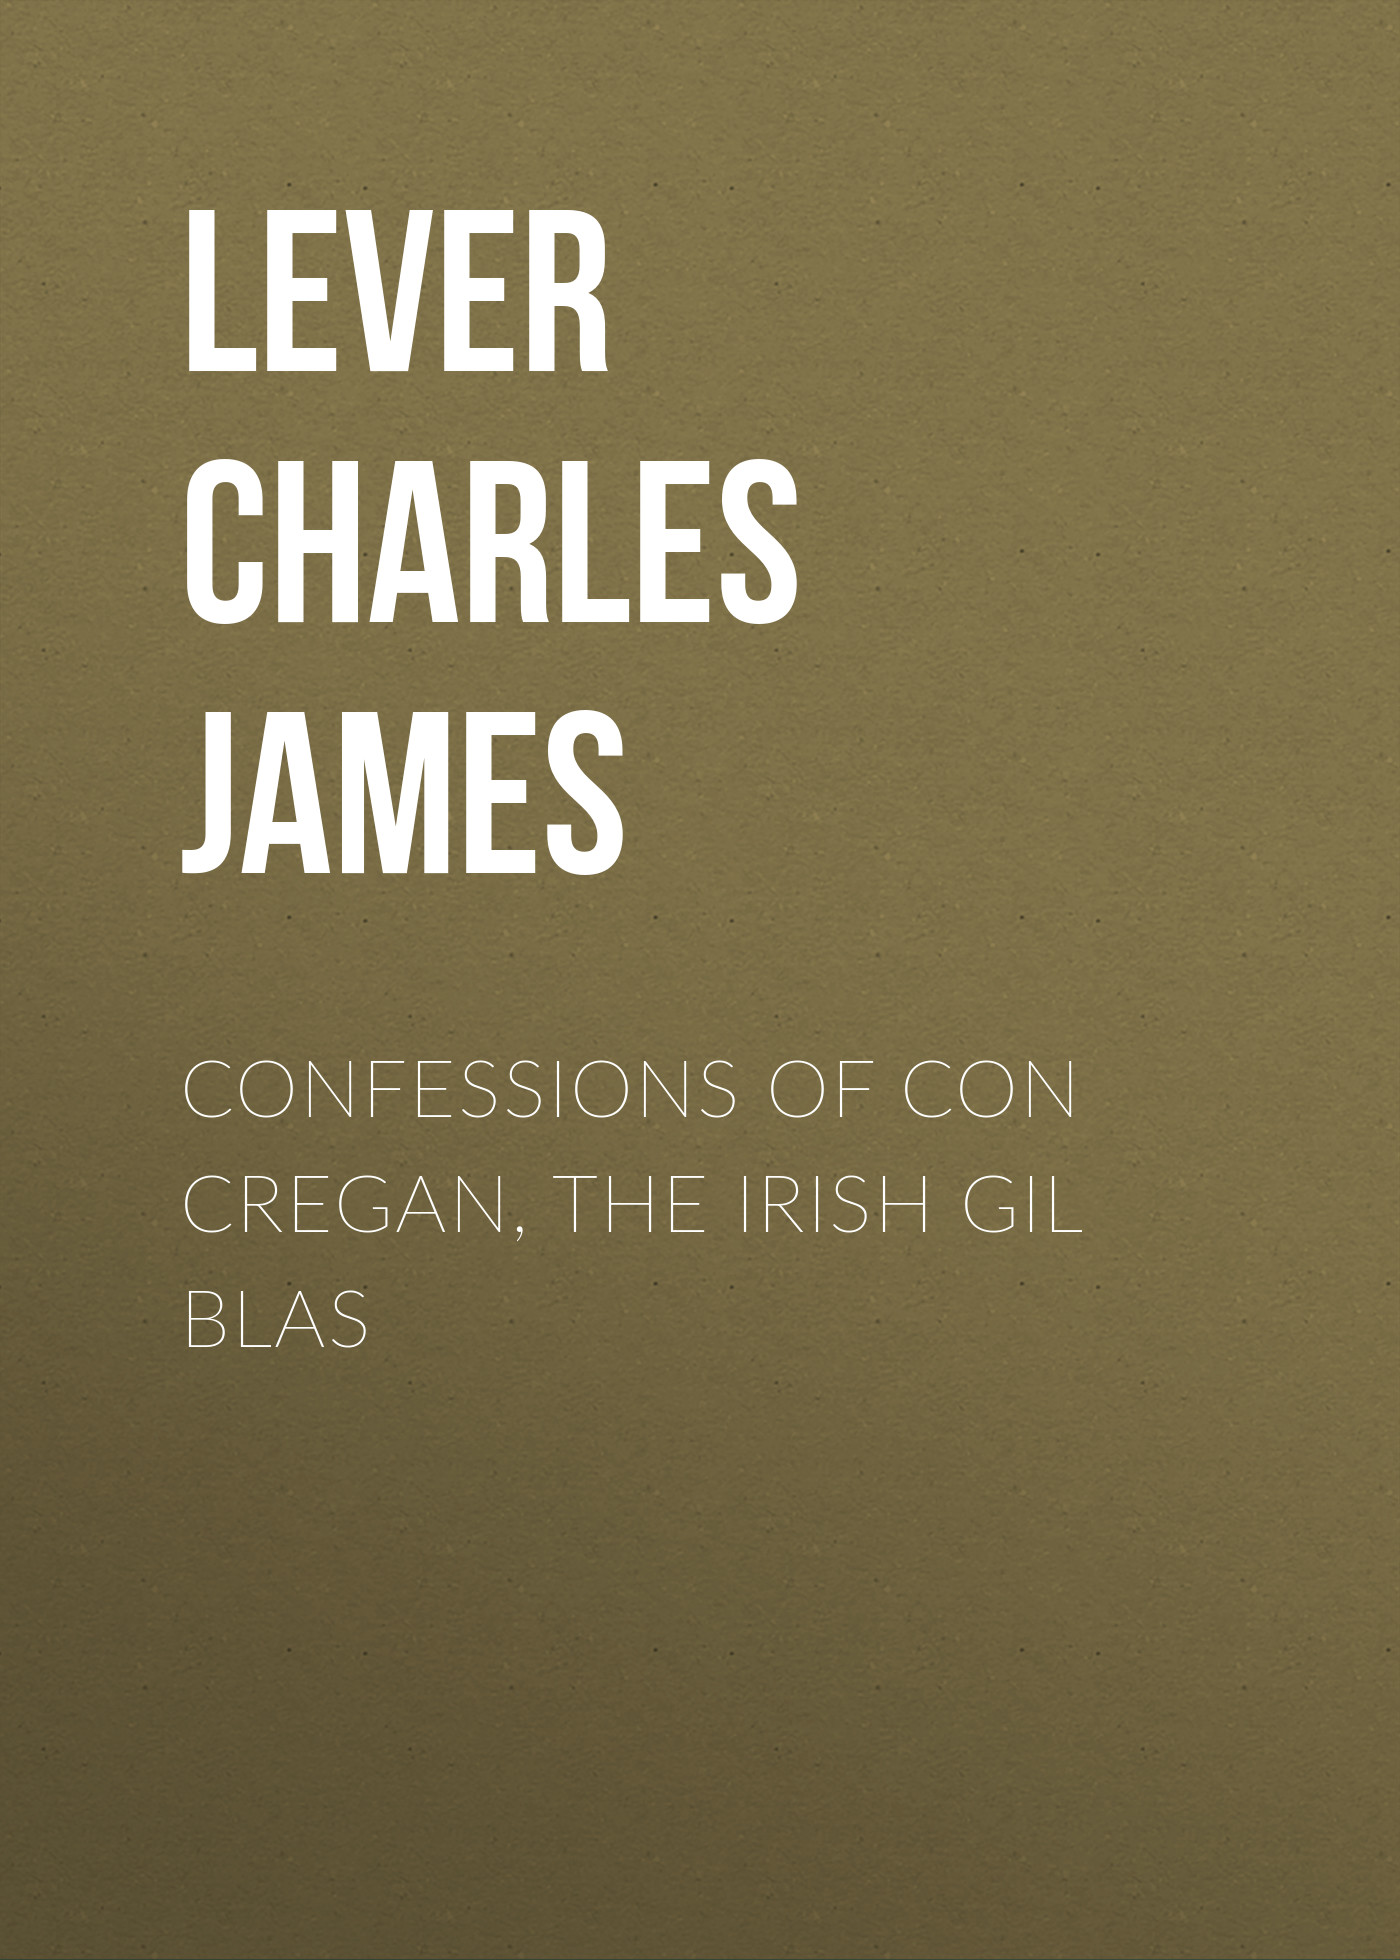 Lever Charles James Confessions Of Con Cregan, the Irish Gil Blas все цены